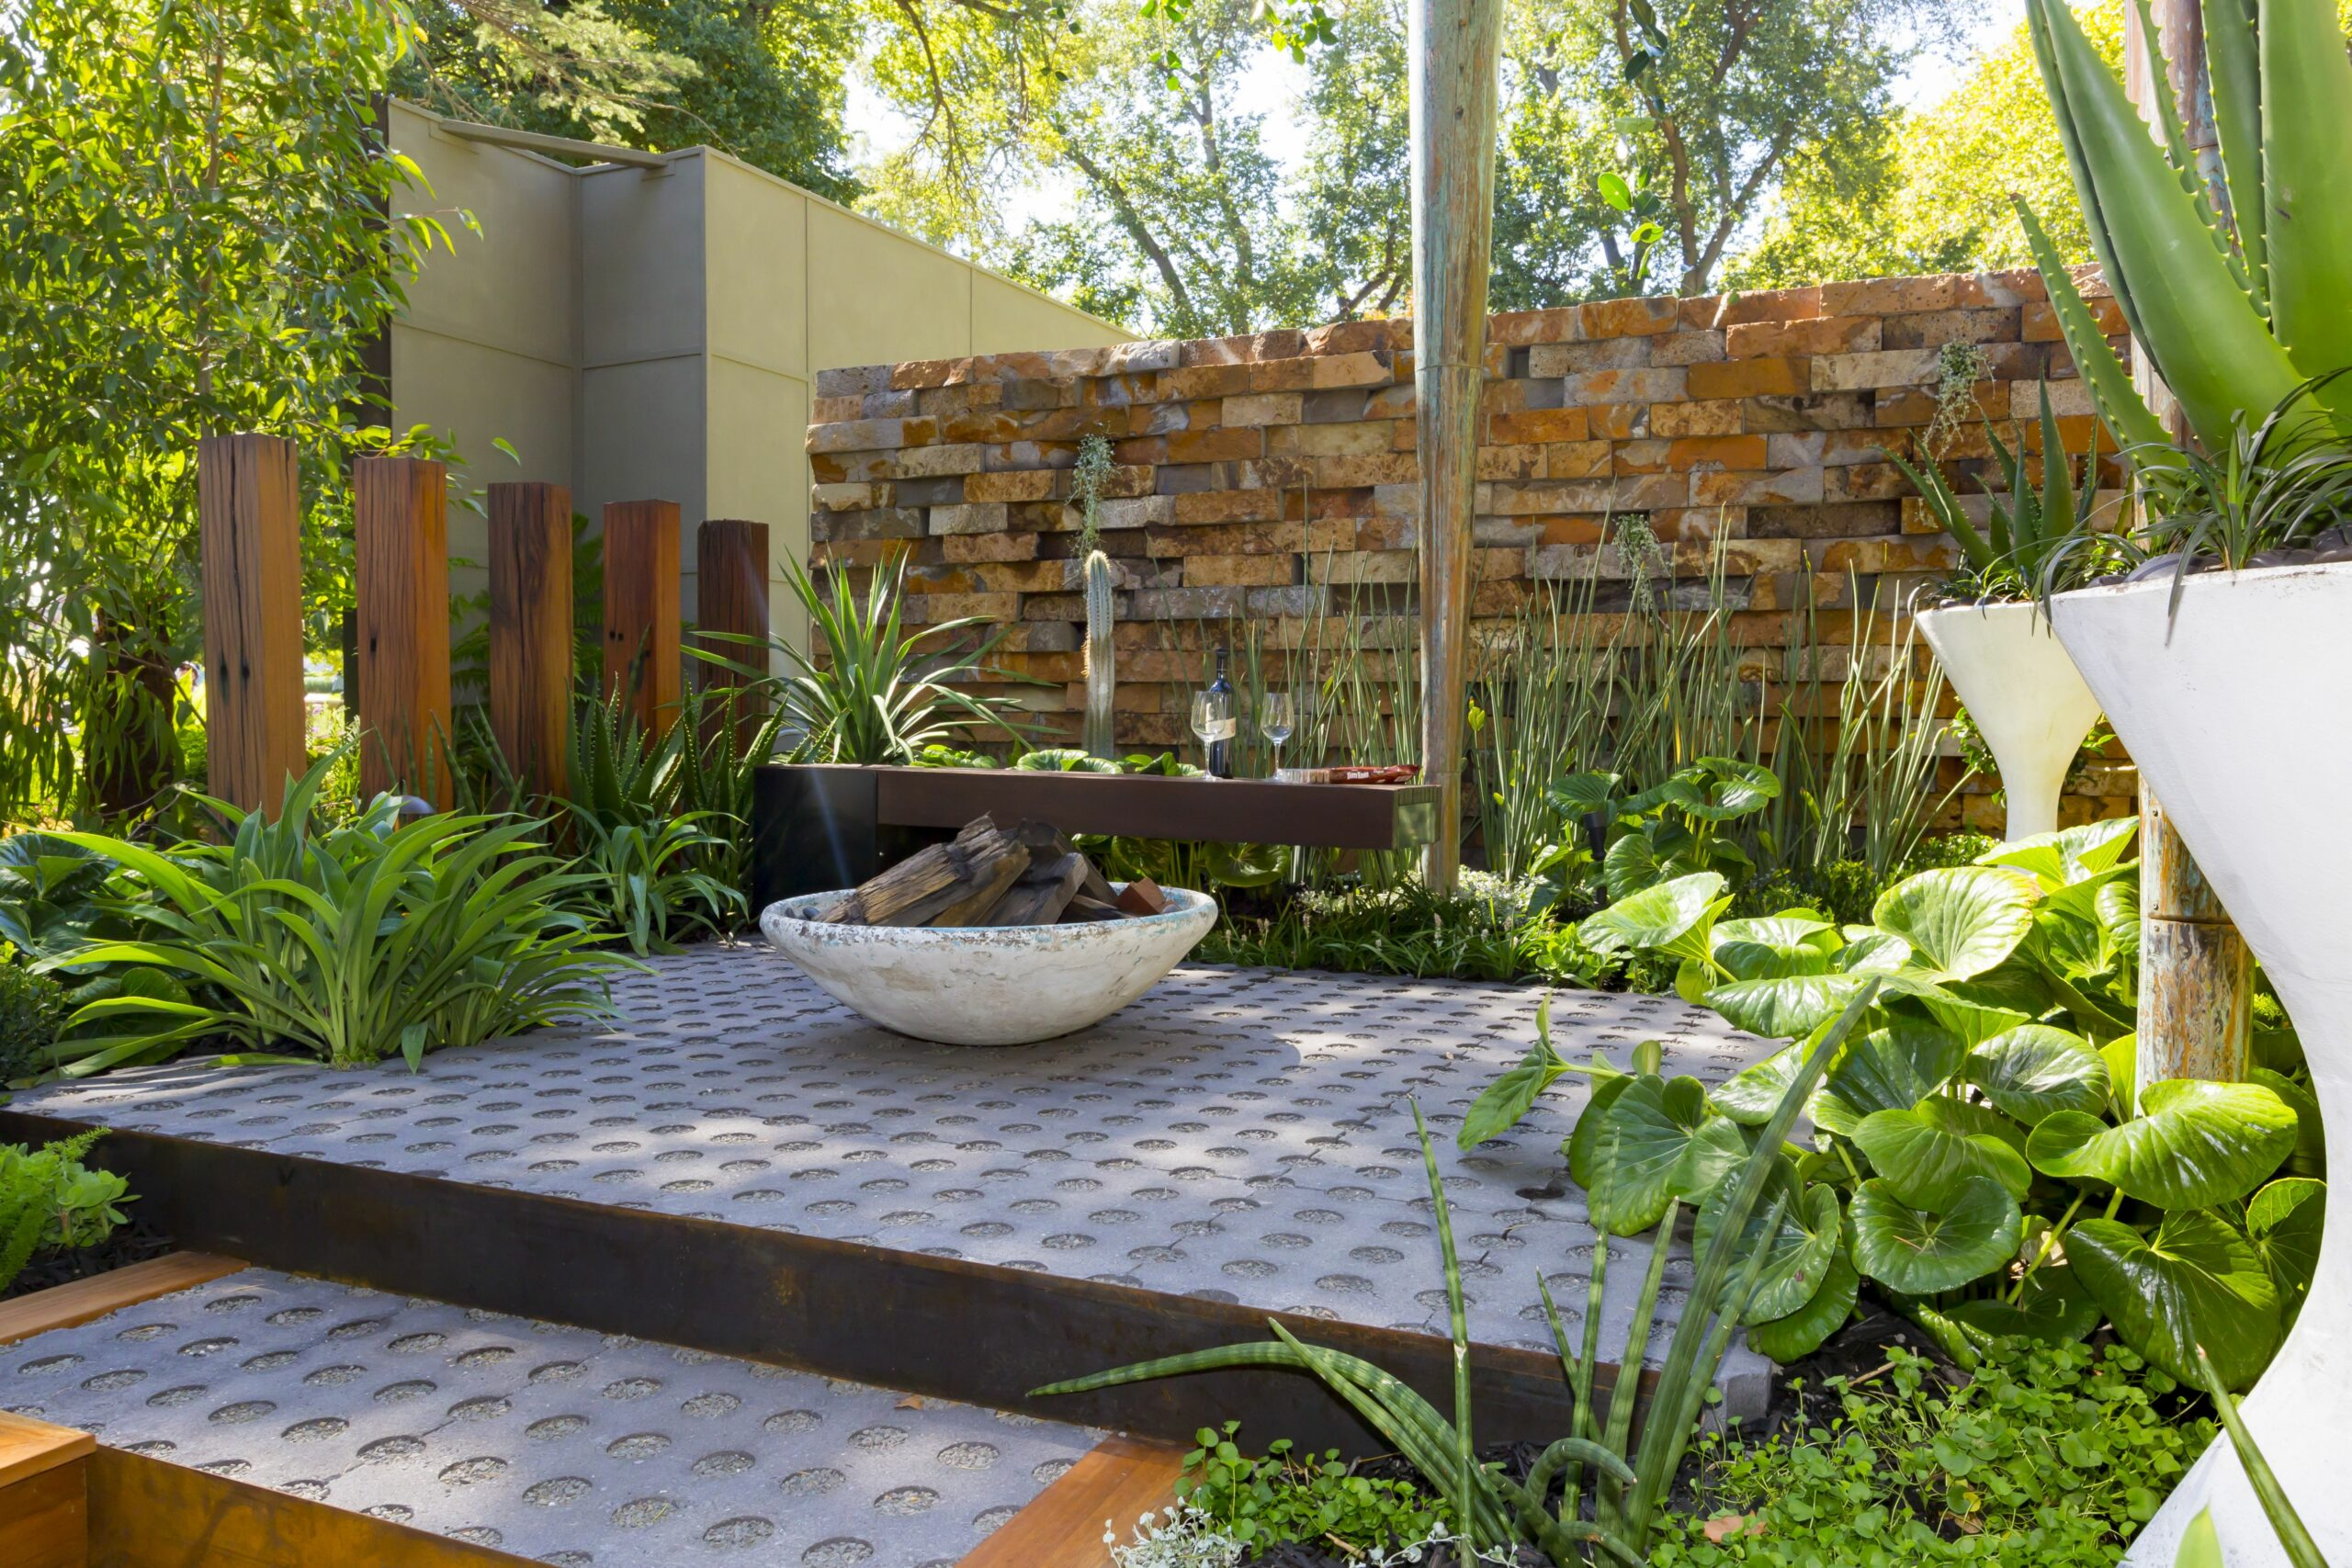 Backyard ideas: 12 reno projects to get it summer-ready - The ..